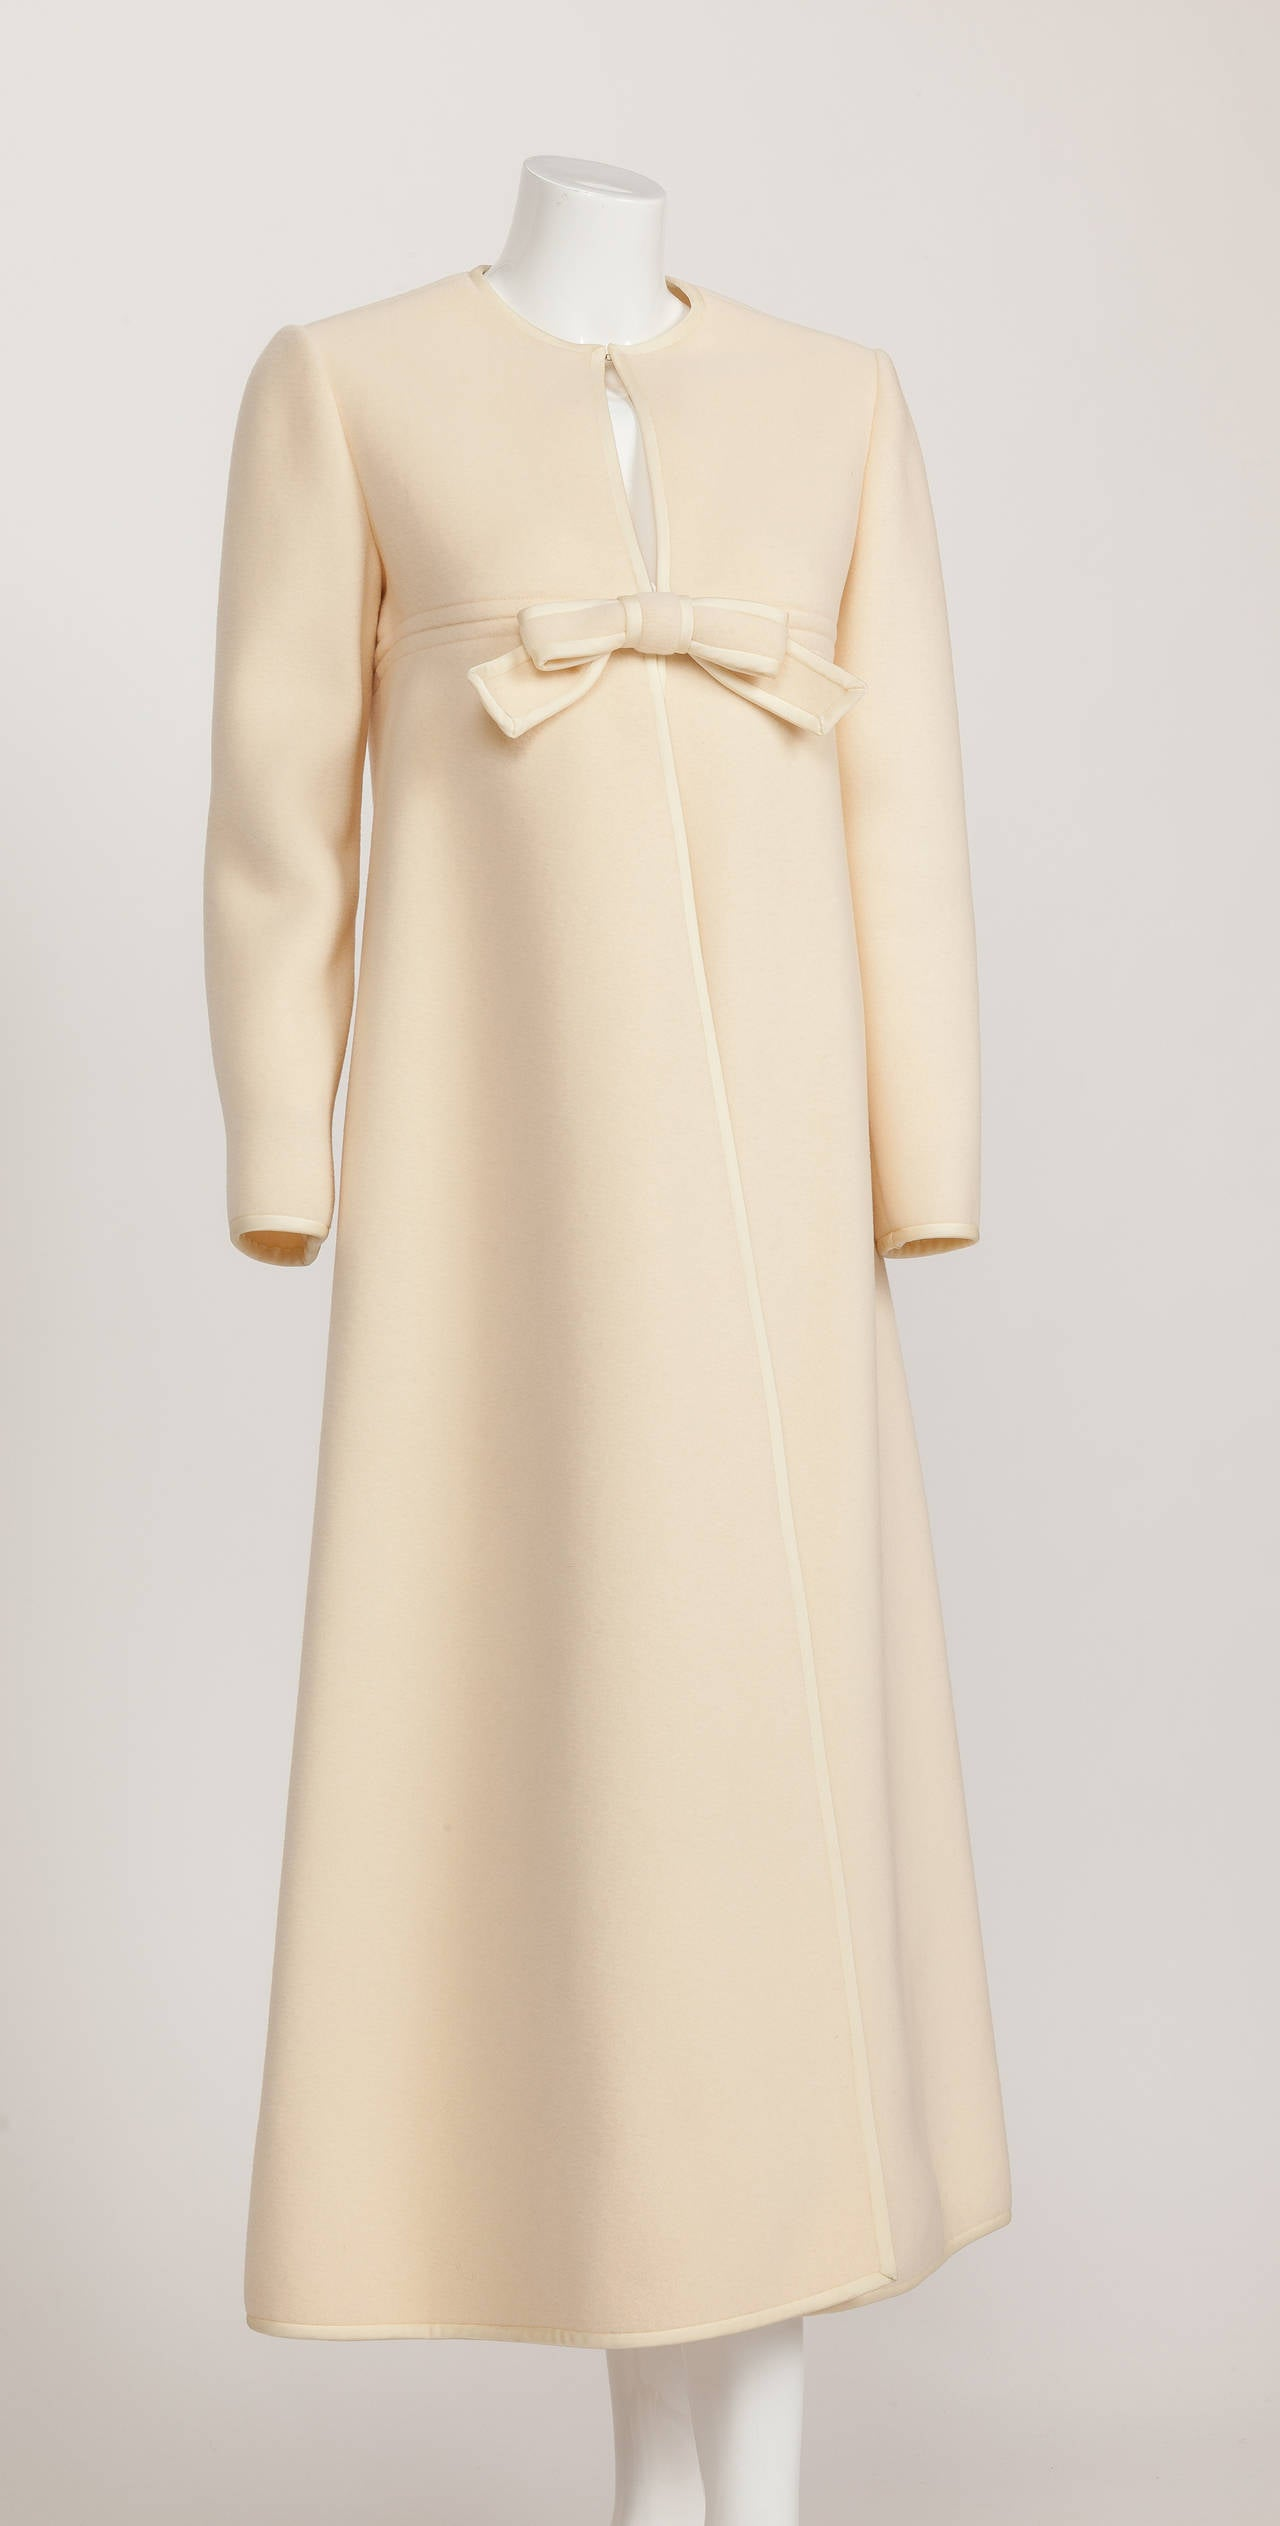 1960s Pierre Cardin A-Line Creme Melton Wool Coat w/Bow and Silky Trim 2